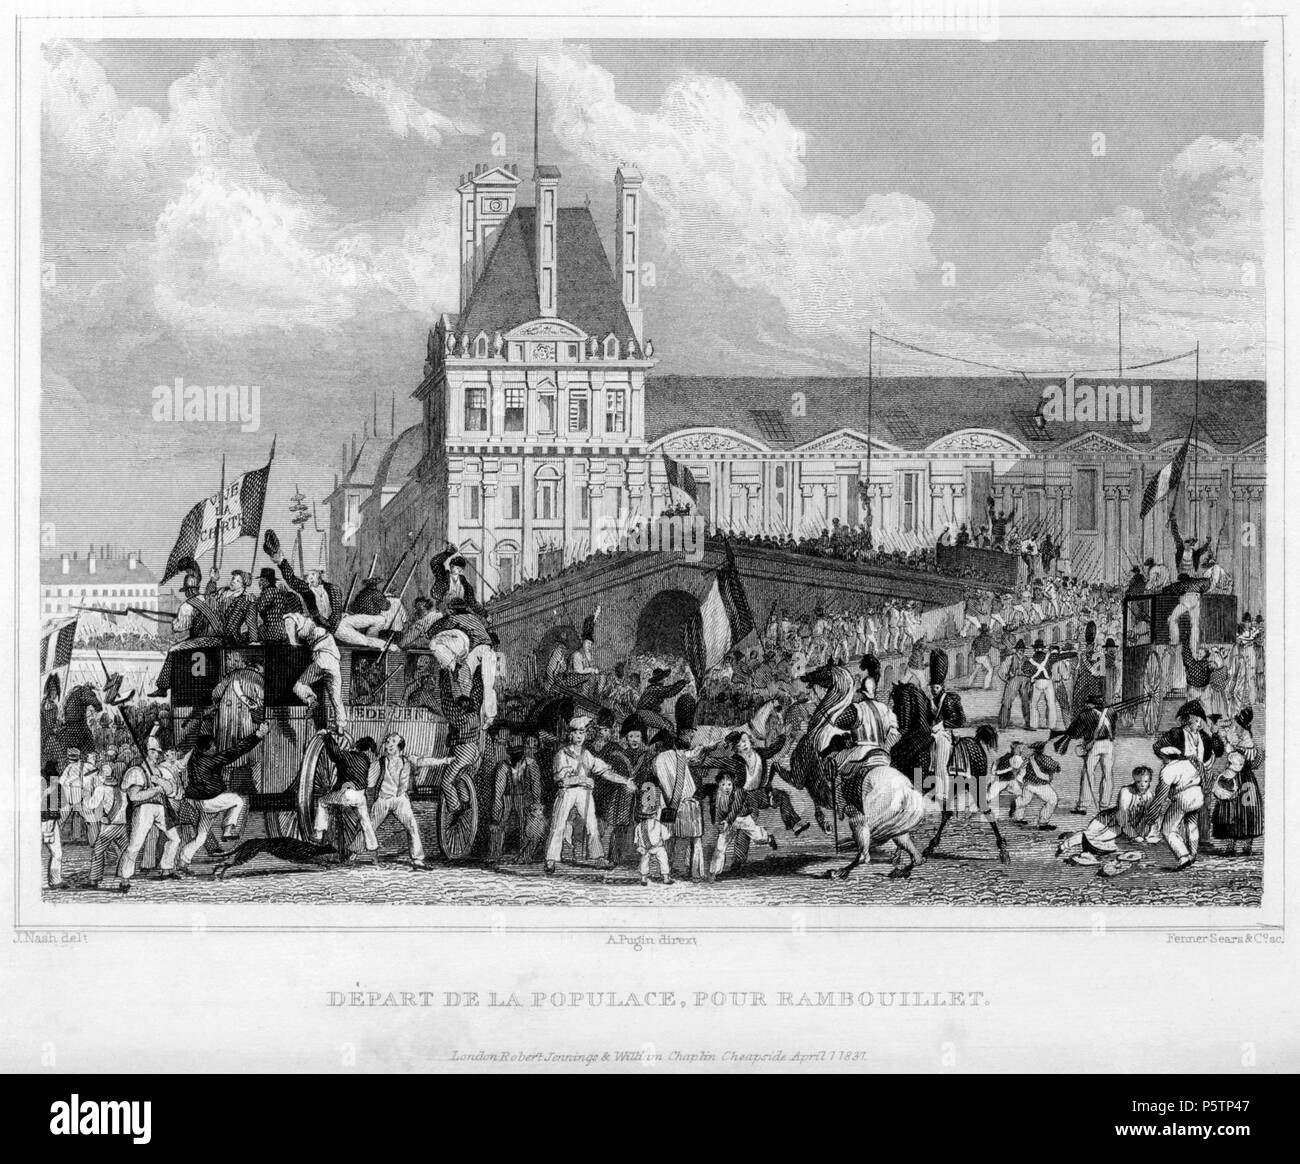 Departure of populace for Rambouillet . Catalyzed by the decreasing popularity of Charles X and the continual economic hardships of the working class, the July Revolution of 1830 ended the Bourbon monarchy and brought Louis-Philippe to the throne. The first day of violence occurred on July 27th, following the publication of the king's controversial ordinances banning freedom of the press. Protesters violently rioted throughout Paris, and the French government was forced to set up various barricades, but to little avail. By July 29th, the third and final day of fighting, the throne of Charles X - Stock Image